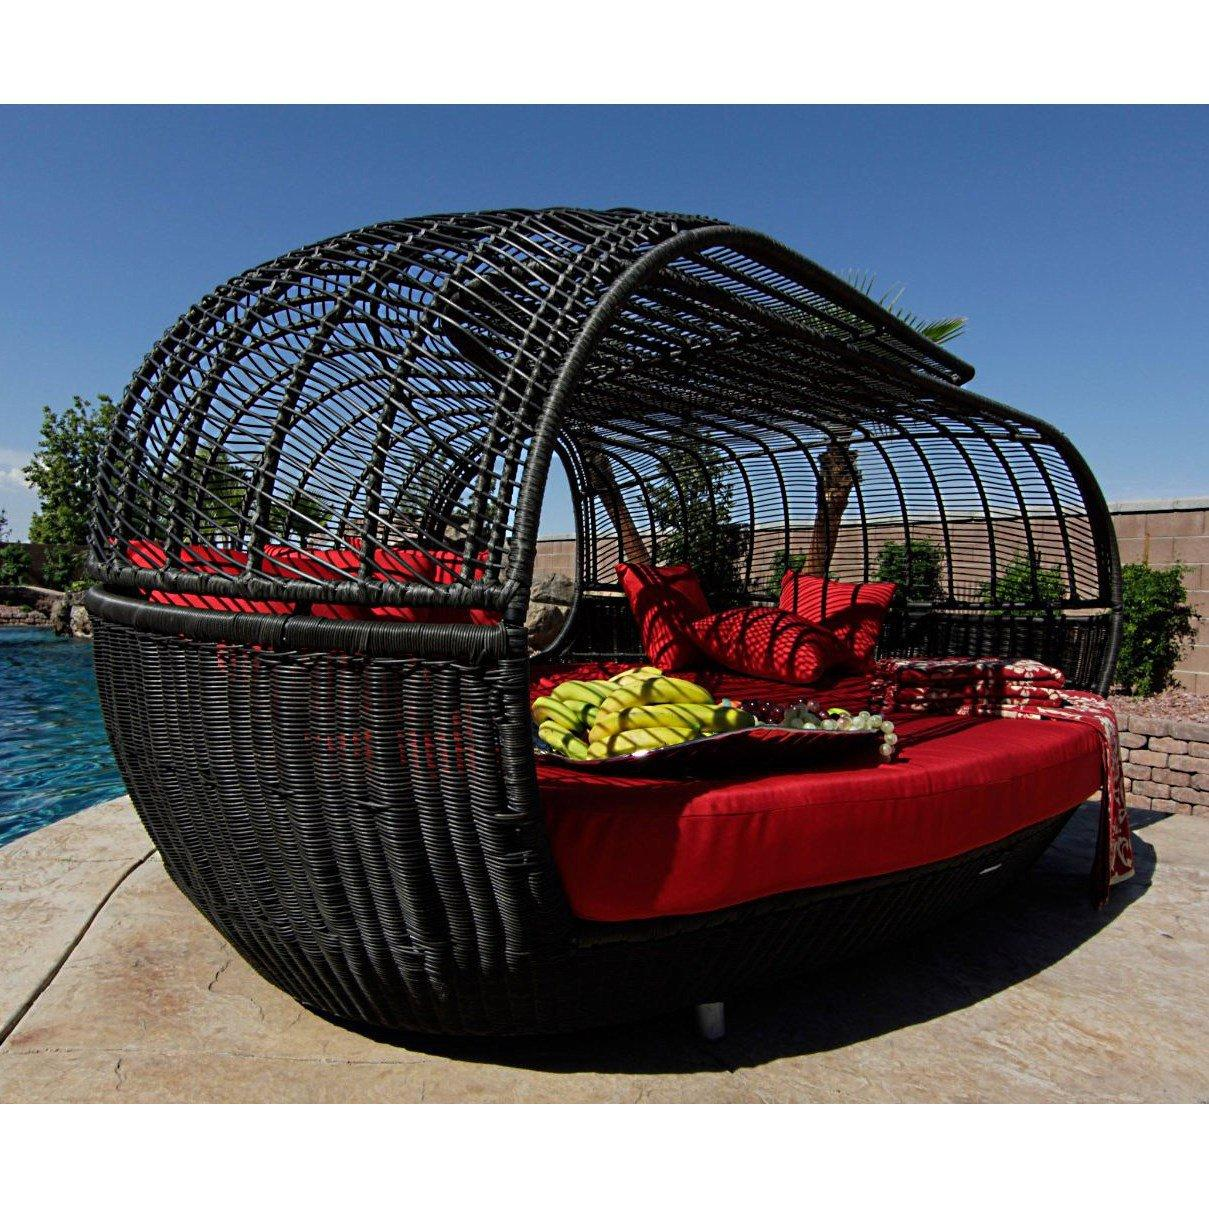 Patio Furniture Handcrafted Outdoor From Amazon Home